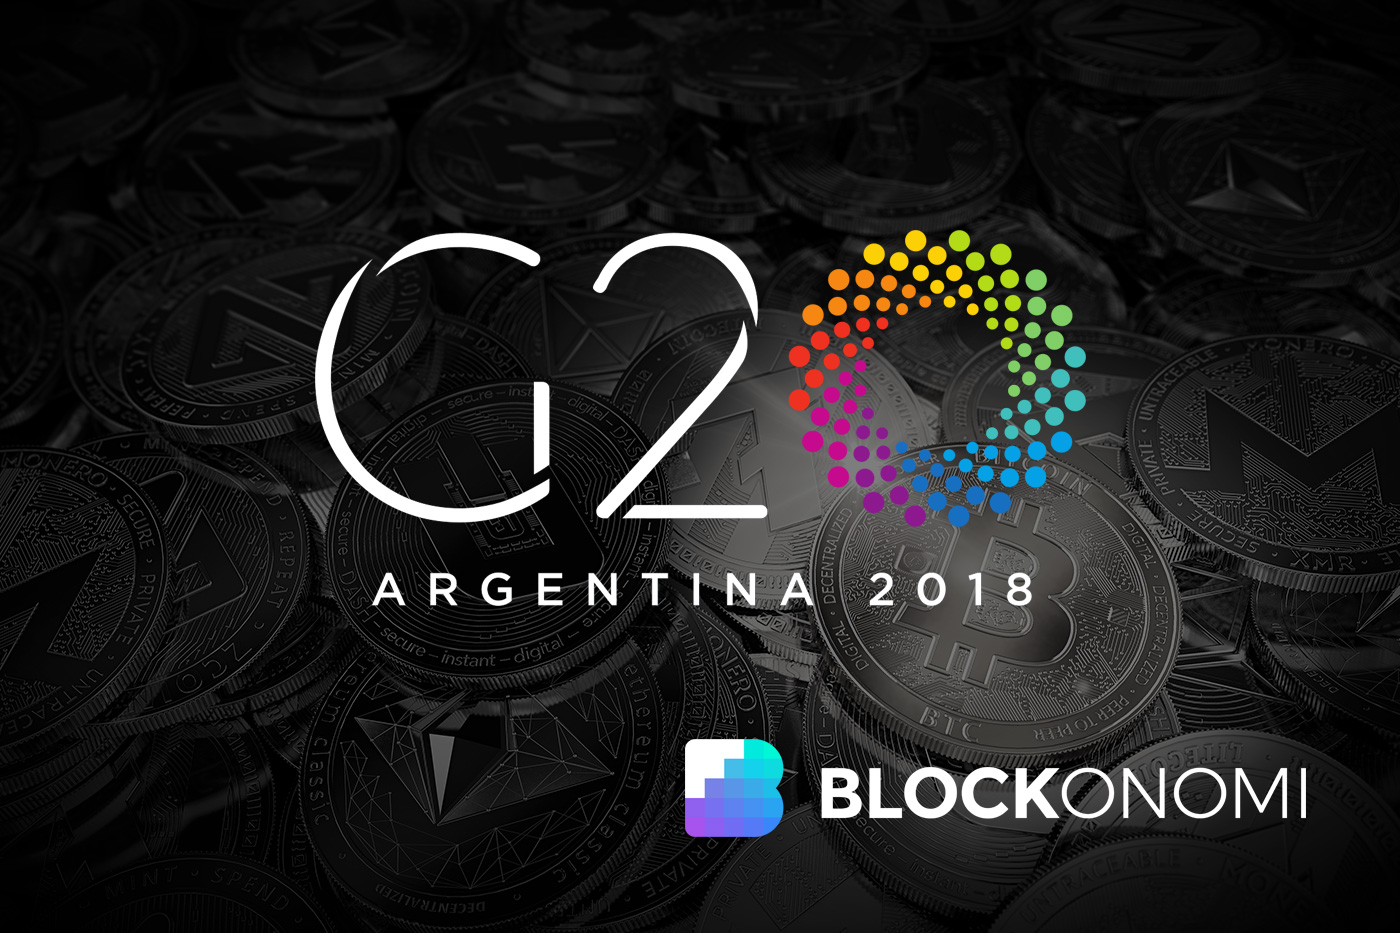 G20 Cryptocurrency Tax